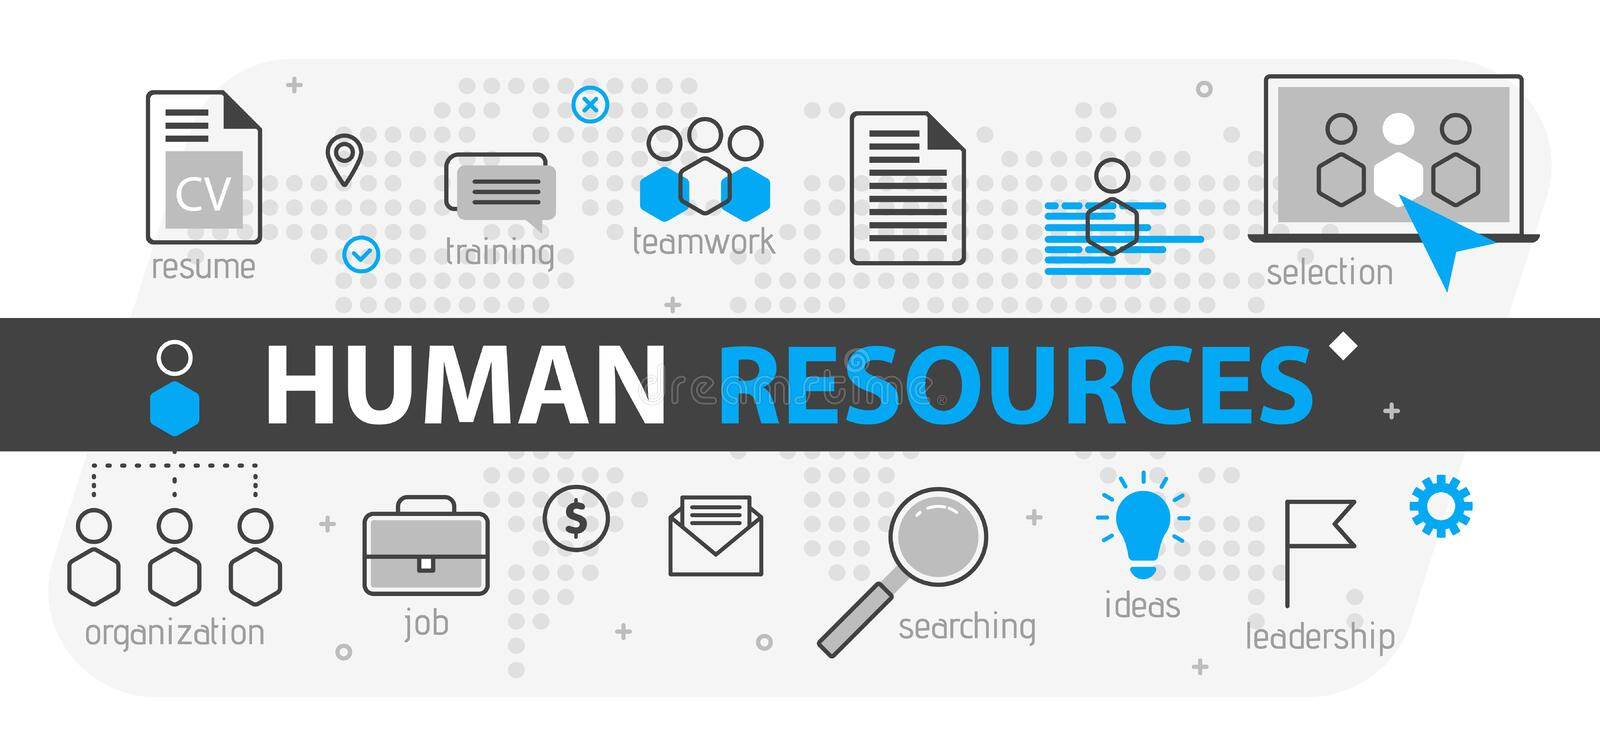 Human resources web banner concept. Outline line business icon set. HR Strategy team, teamwork and corporate organization i. Human resources web banner concept vector illustration